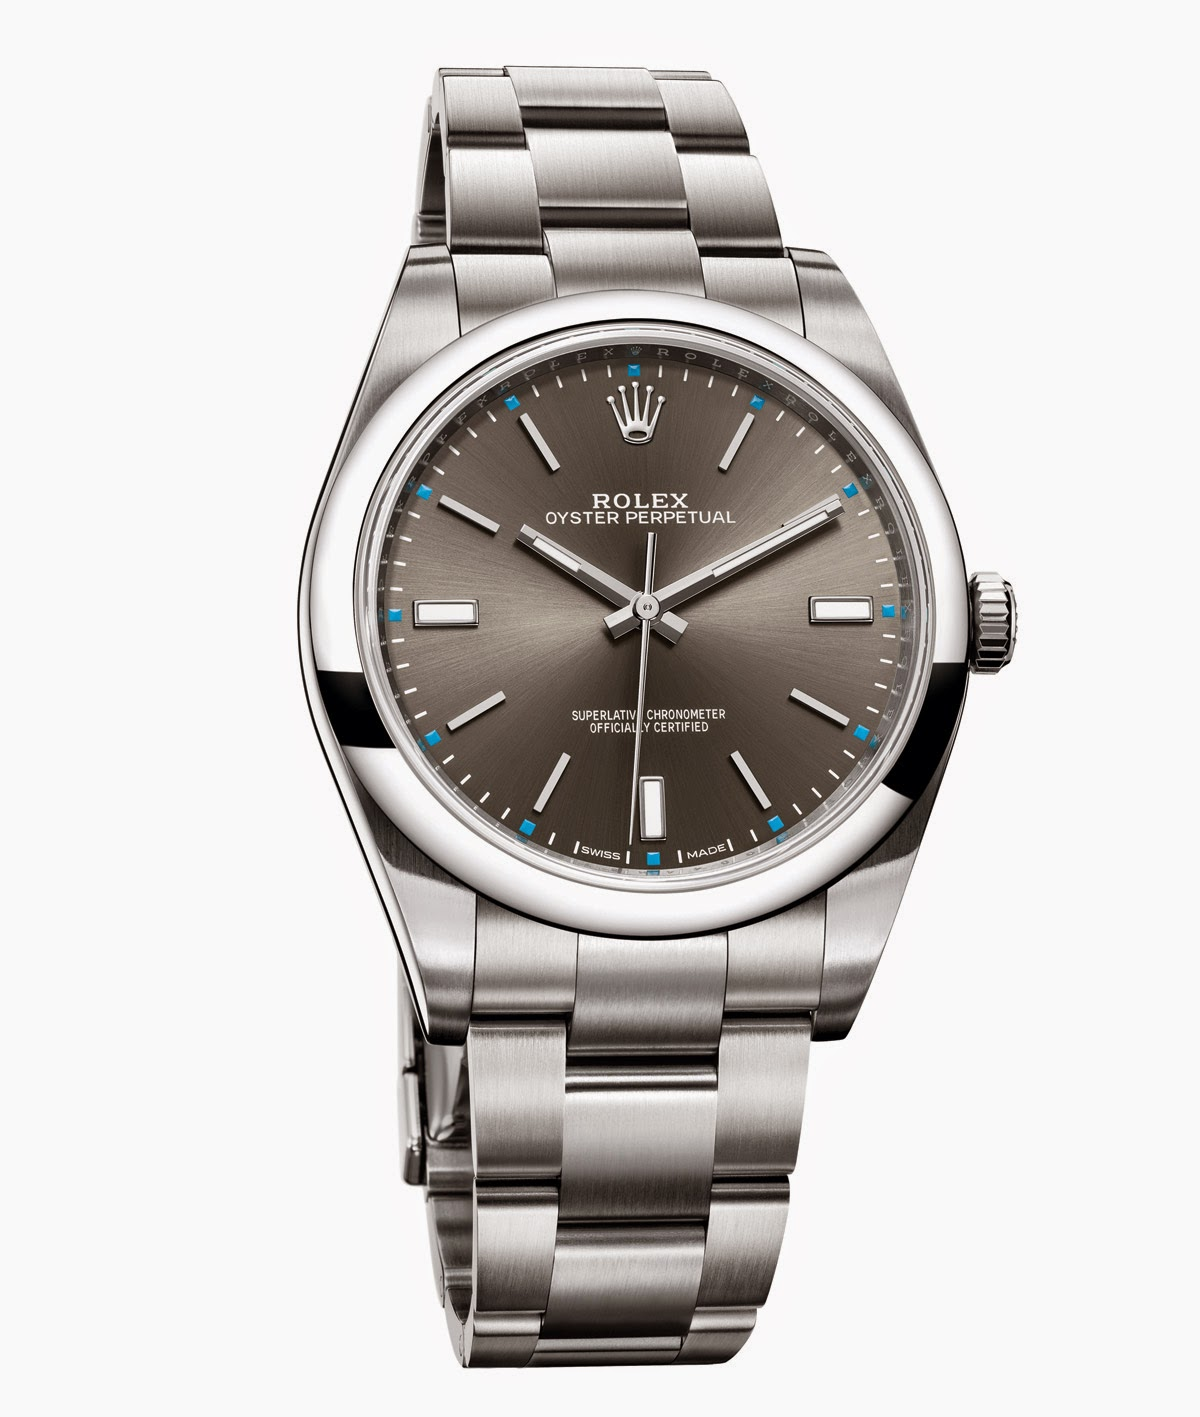 Rolex oyster perpetual 2015 new models time and watches for Oyster watches